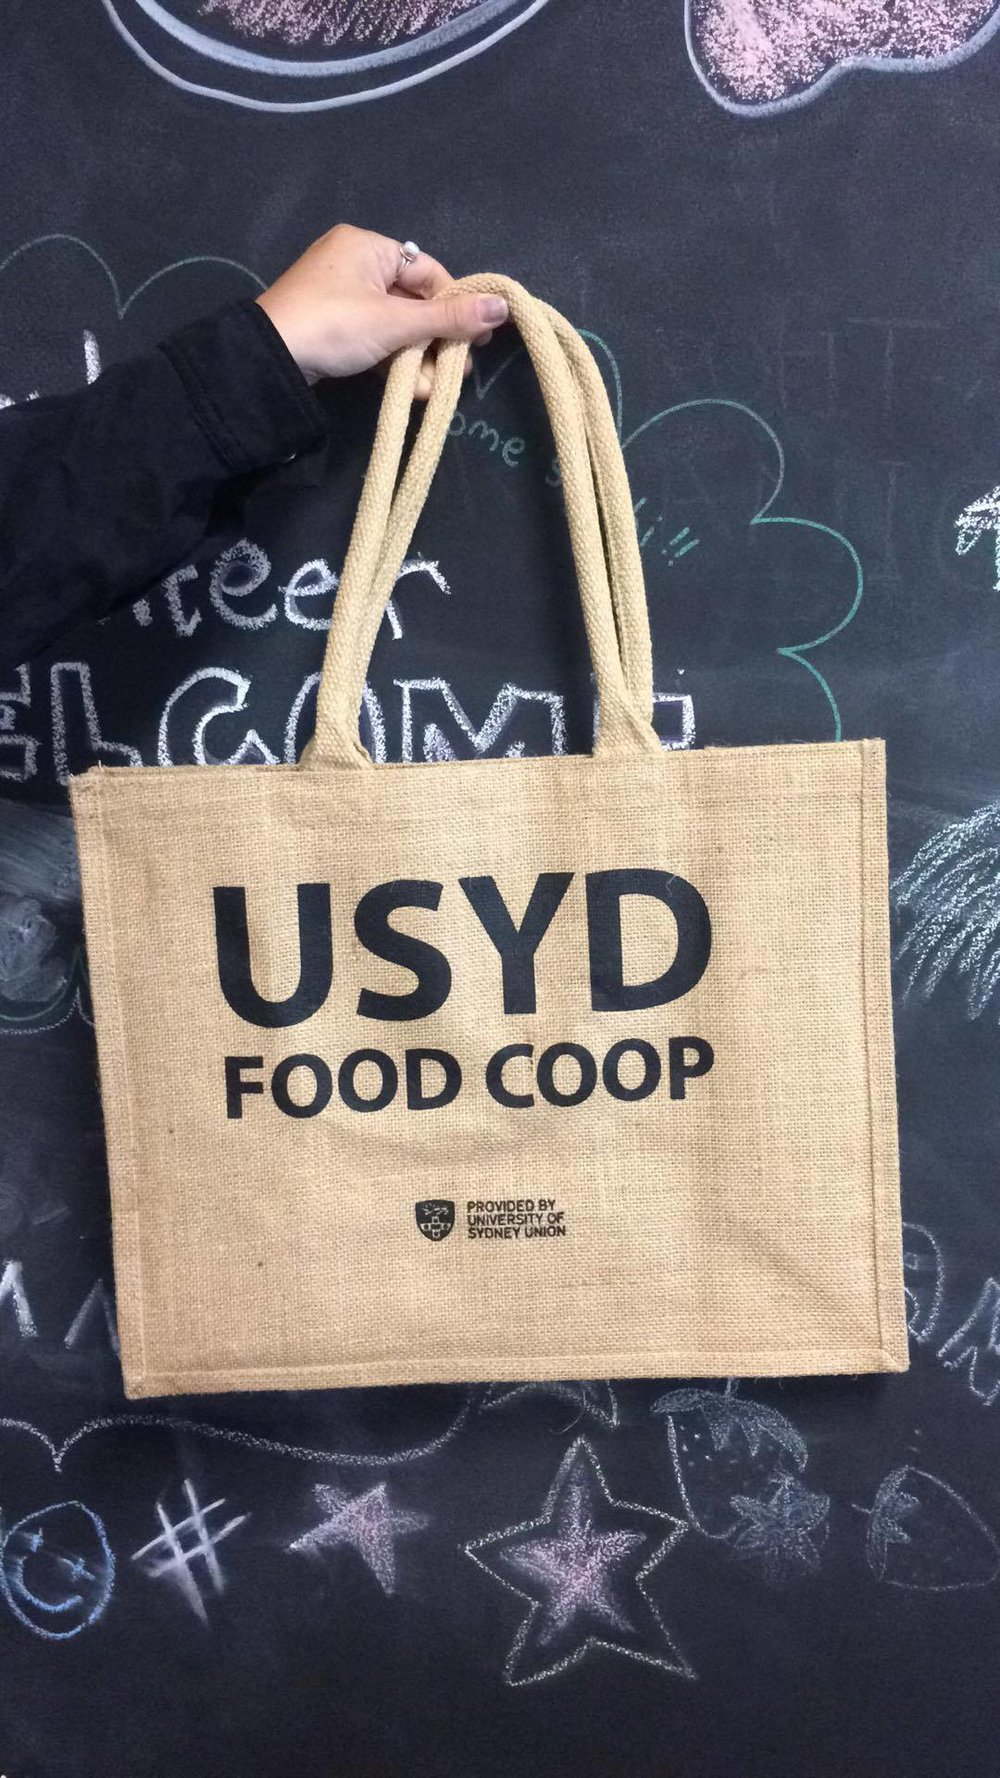 The University of Sydney Food Coop